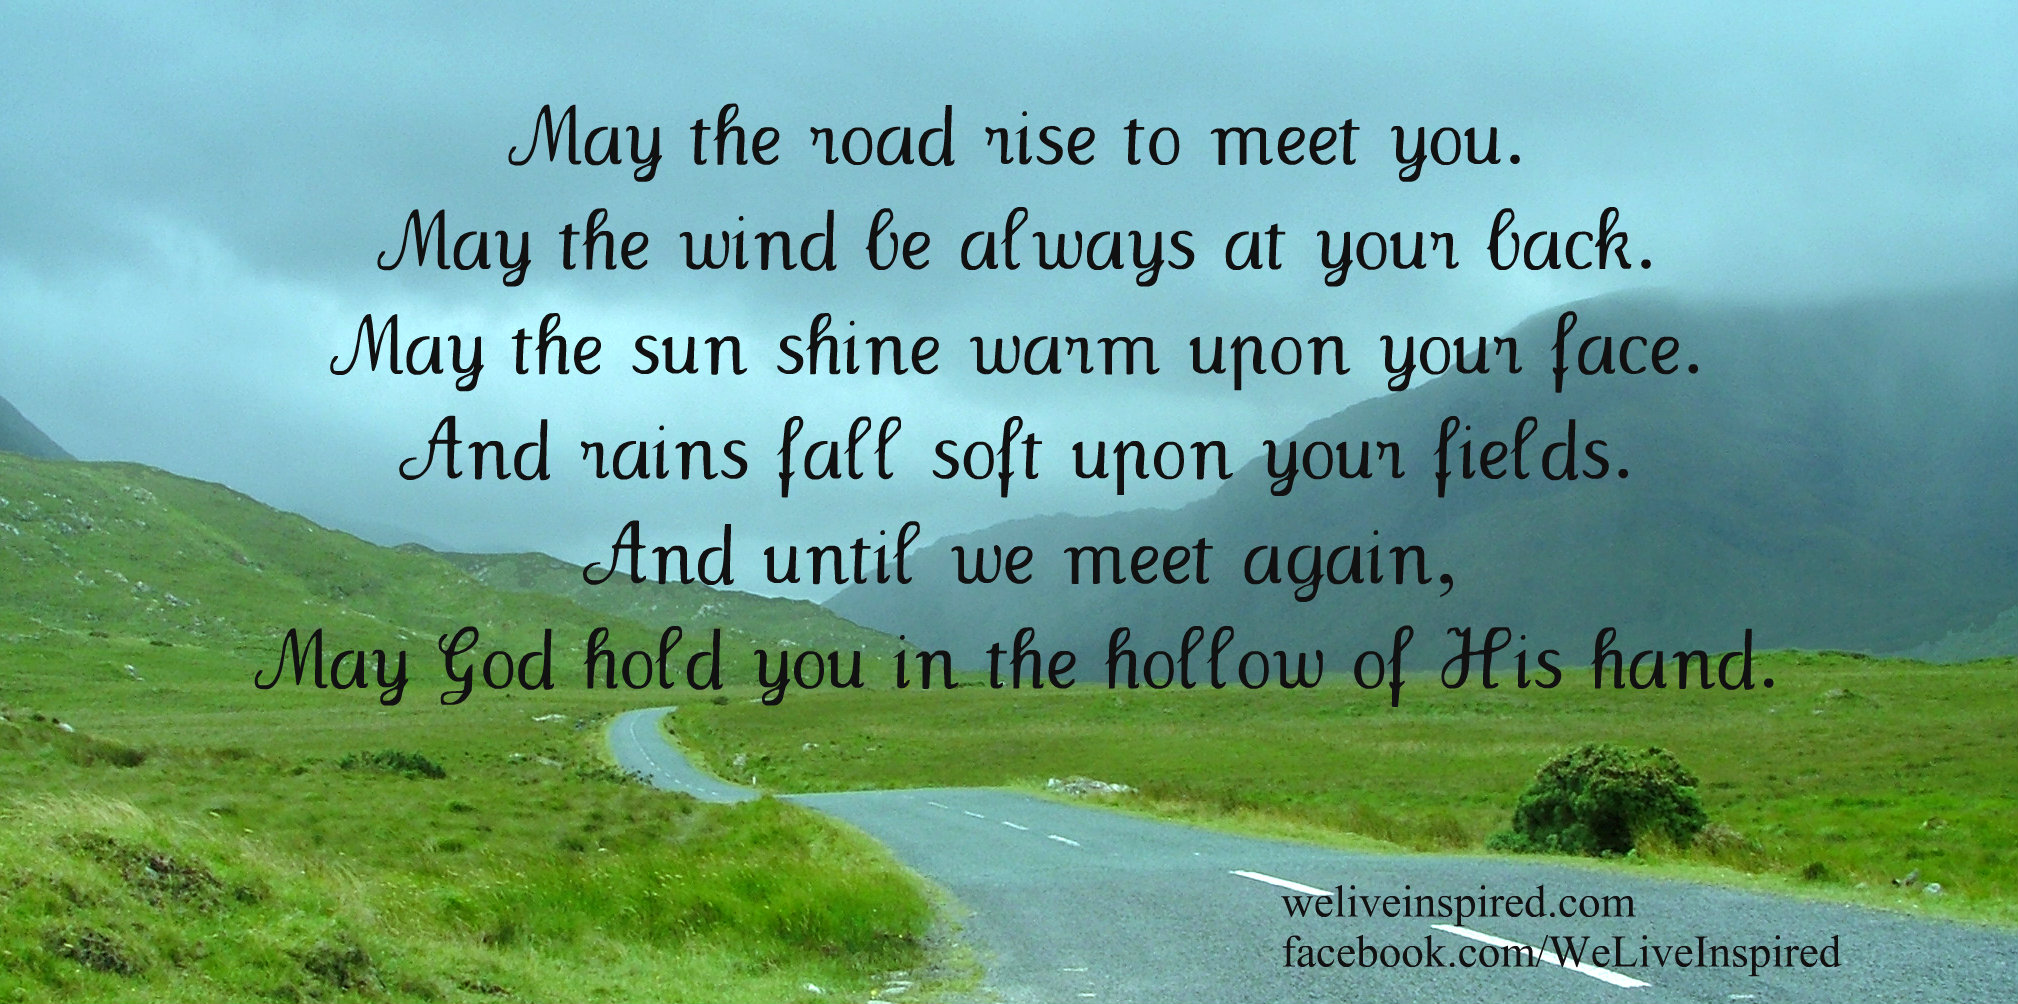 may the road rise to meet you definition